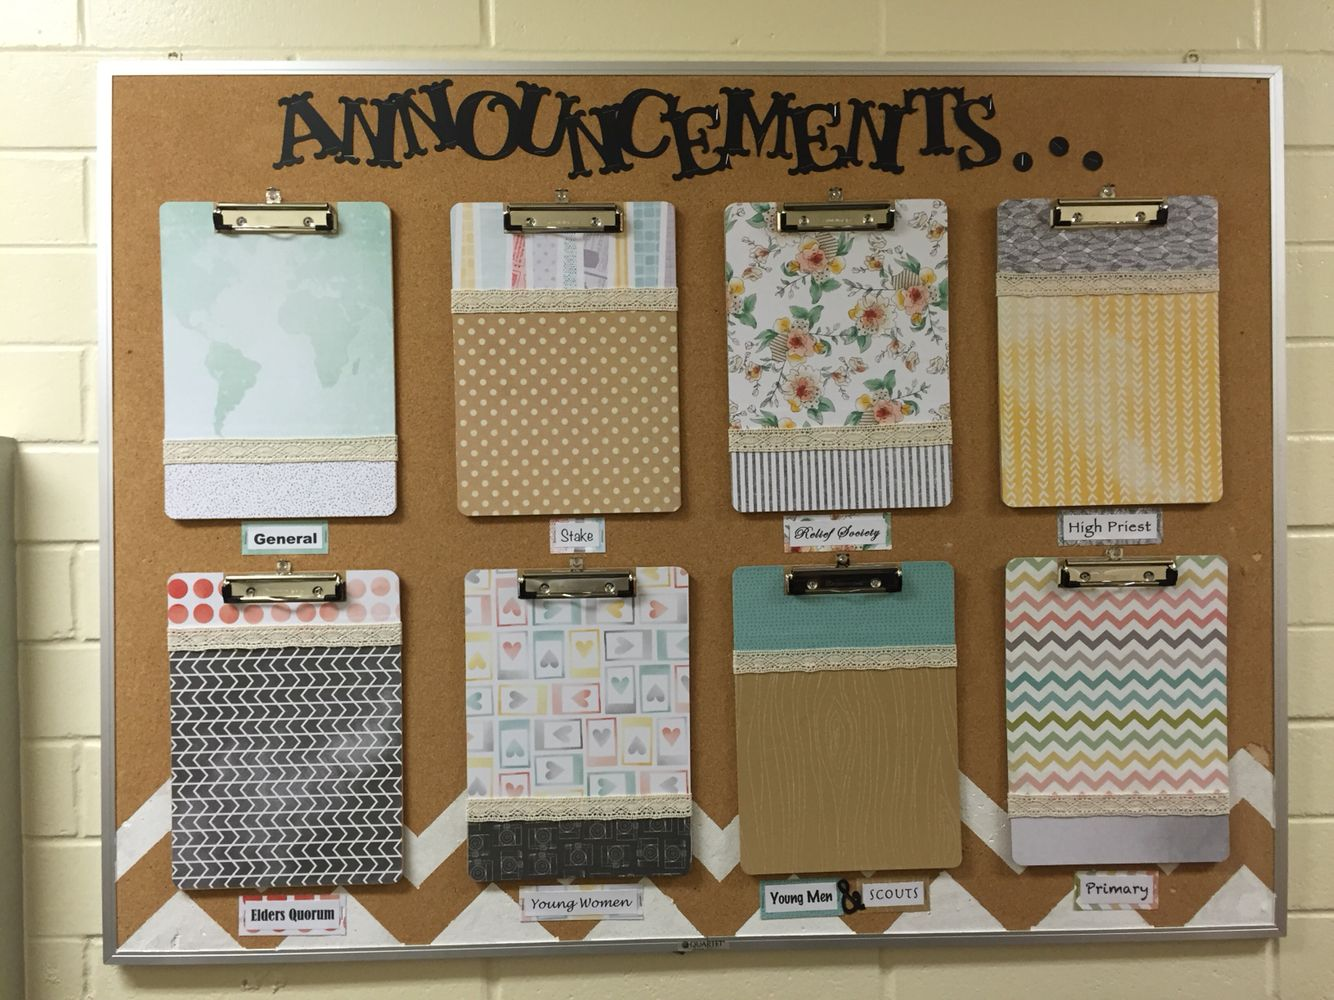 Superior Lds Church Bulletin Board. Church Announcements. Neat And Organized!